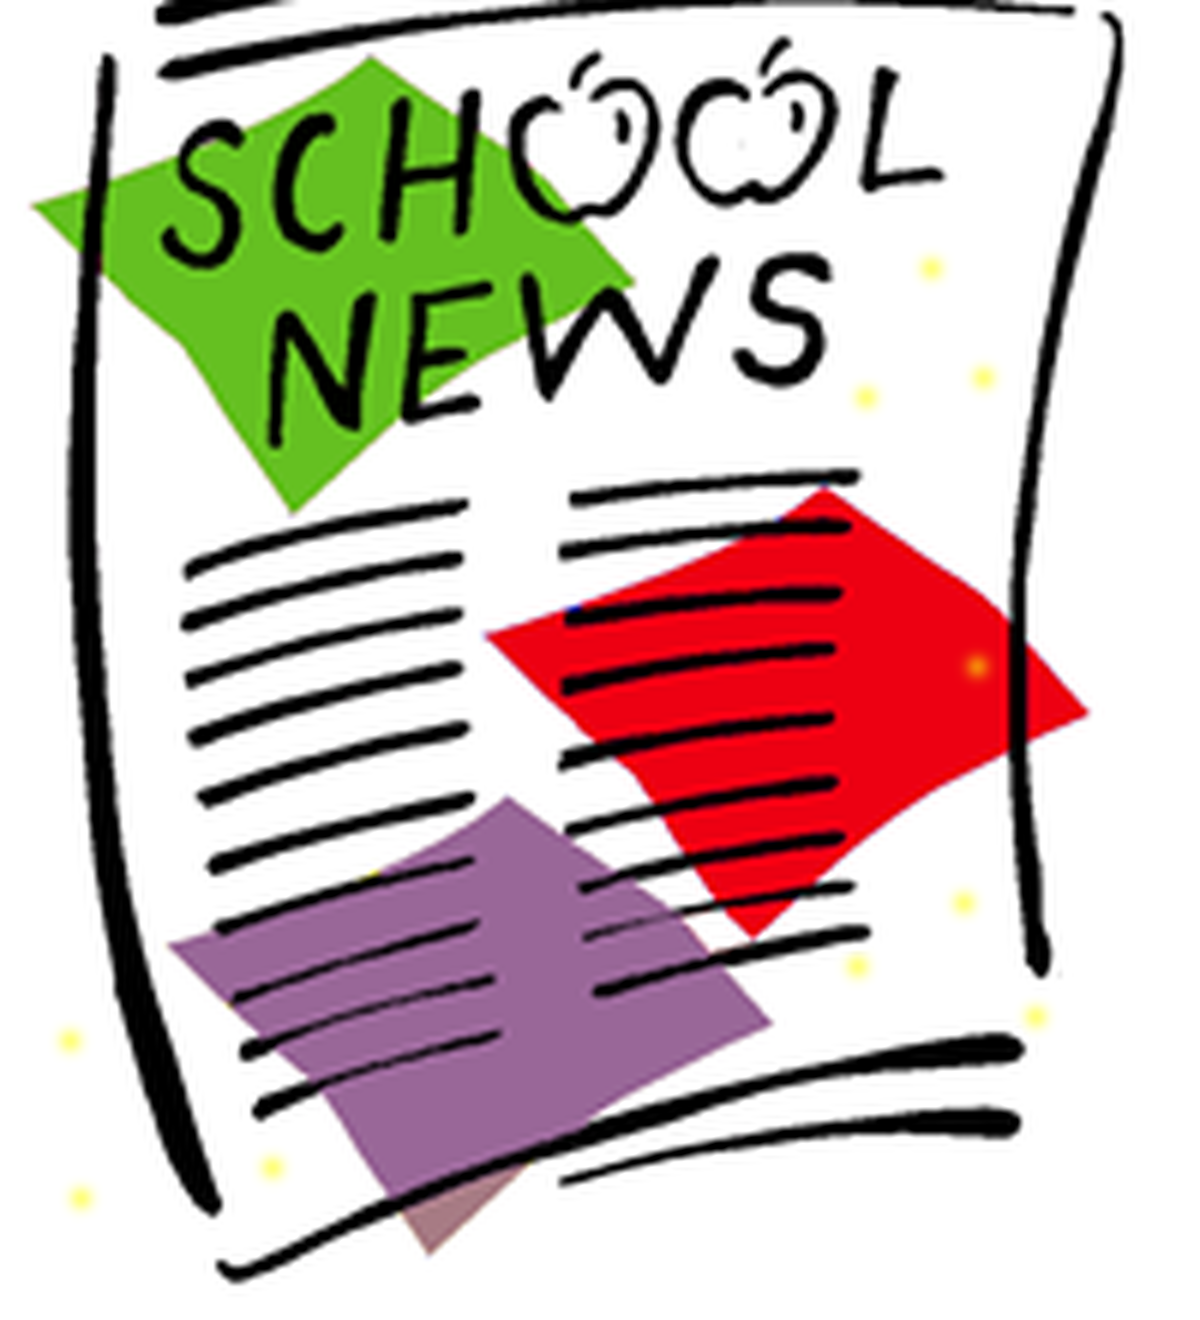 school news letter icon